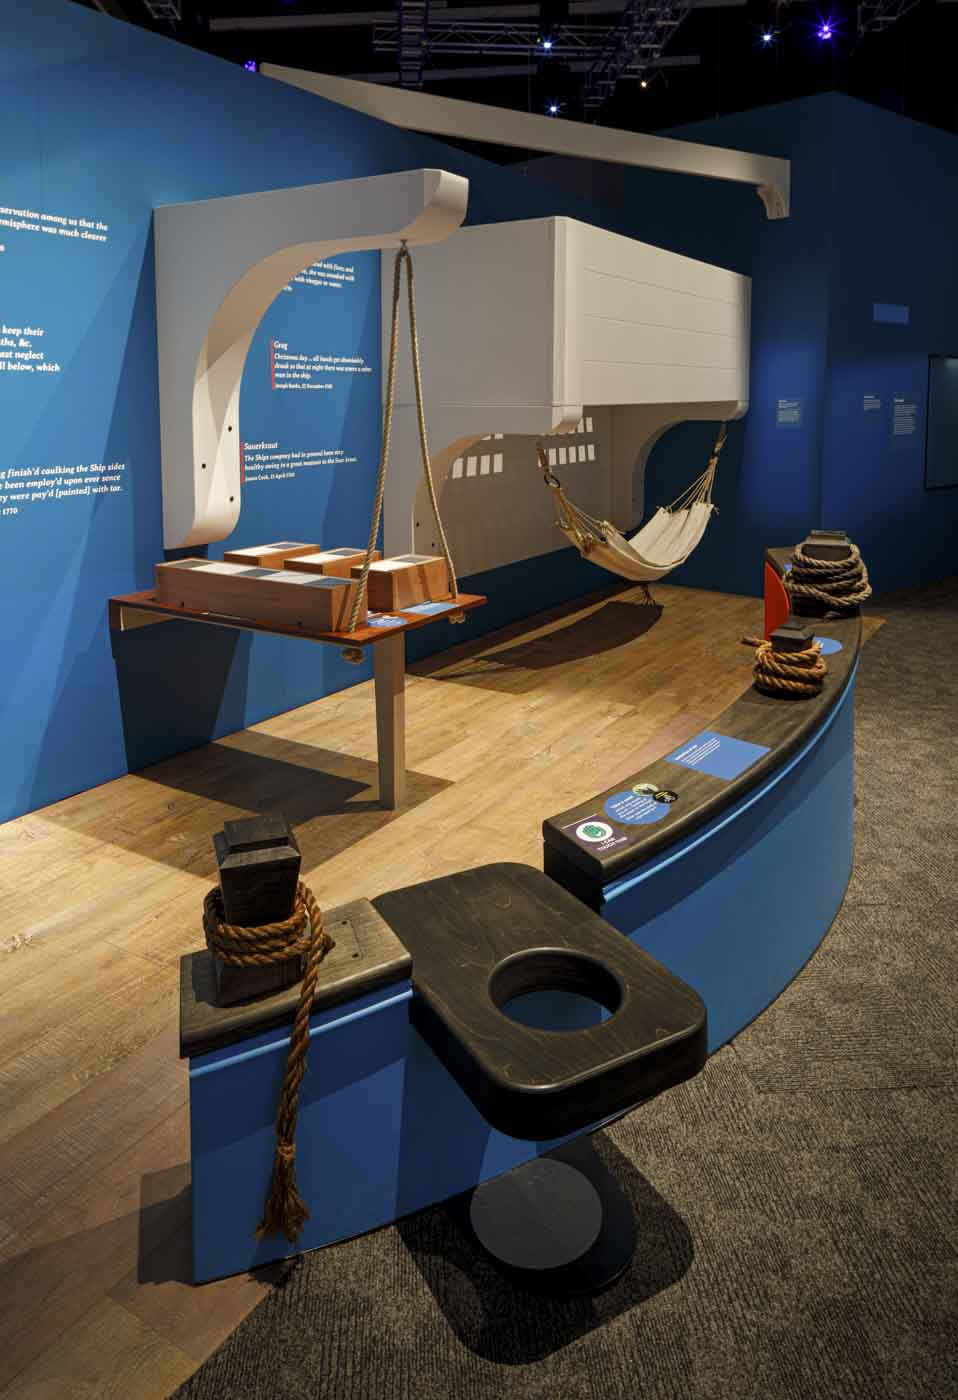 Interior view of a museum exhibition with a canvas hammock, ropes tied around bollards and a timber toilet seat. - click to view larger image